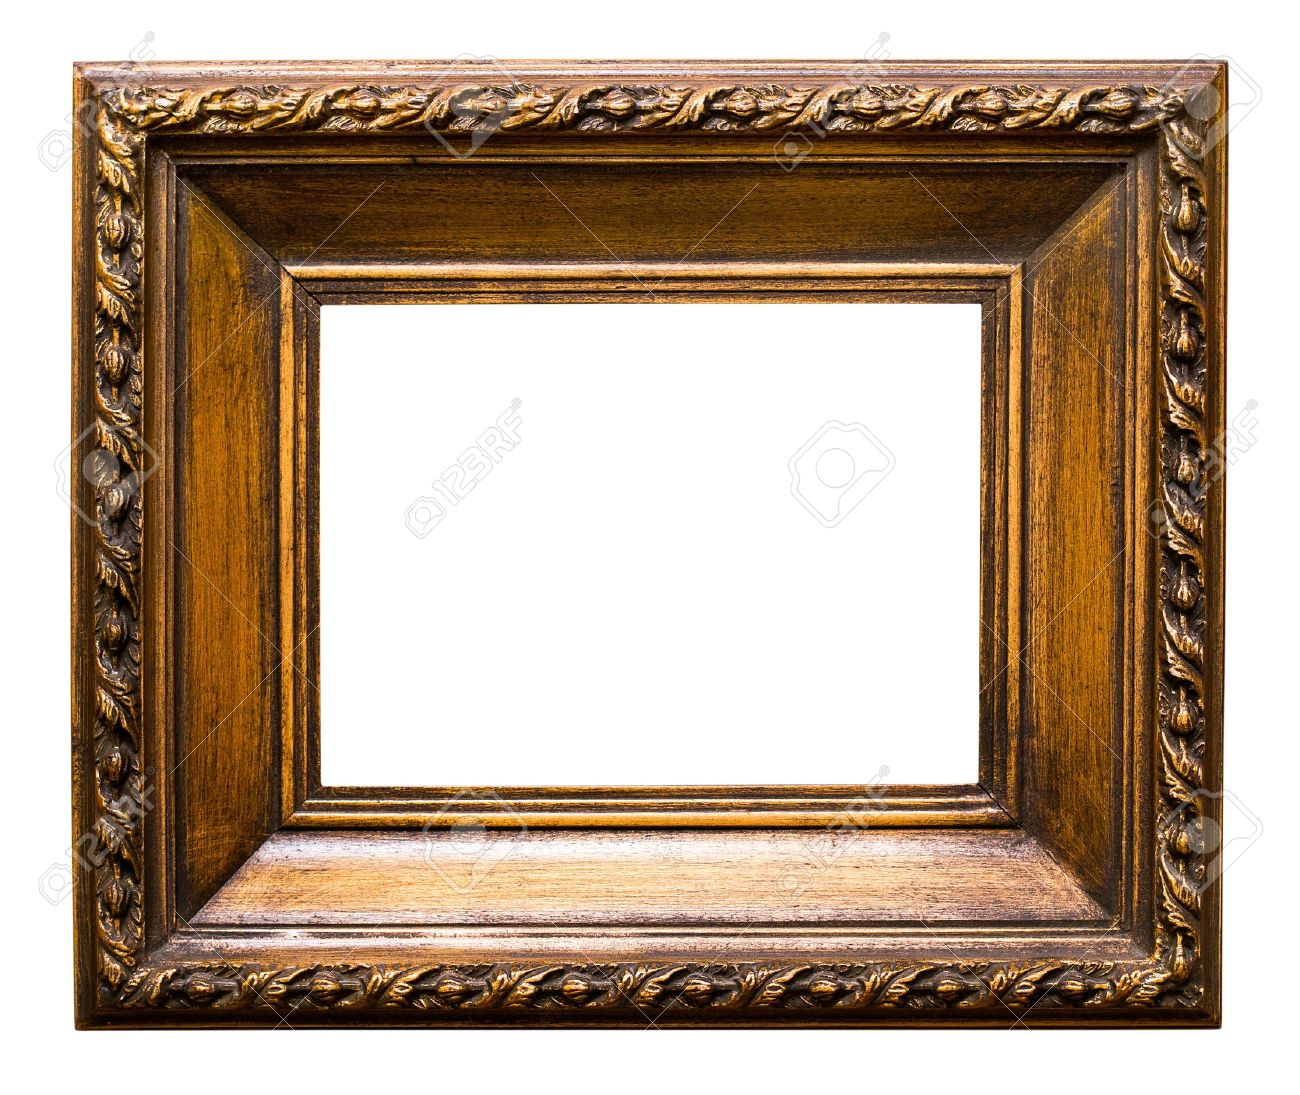 Old Golden Retro Mirror Frame No 24 Isolated On White Background ...